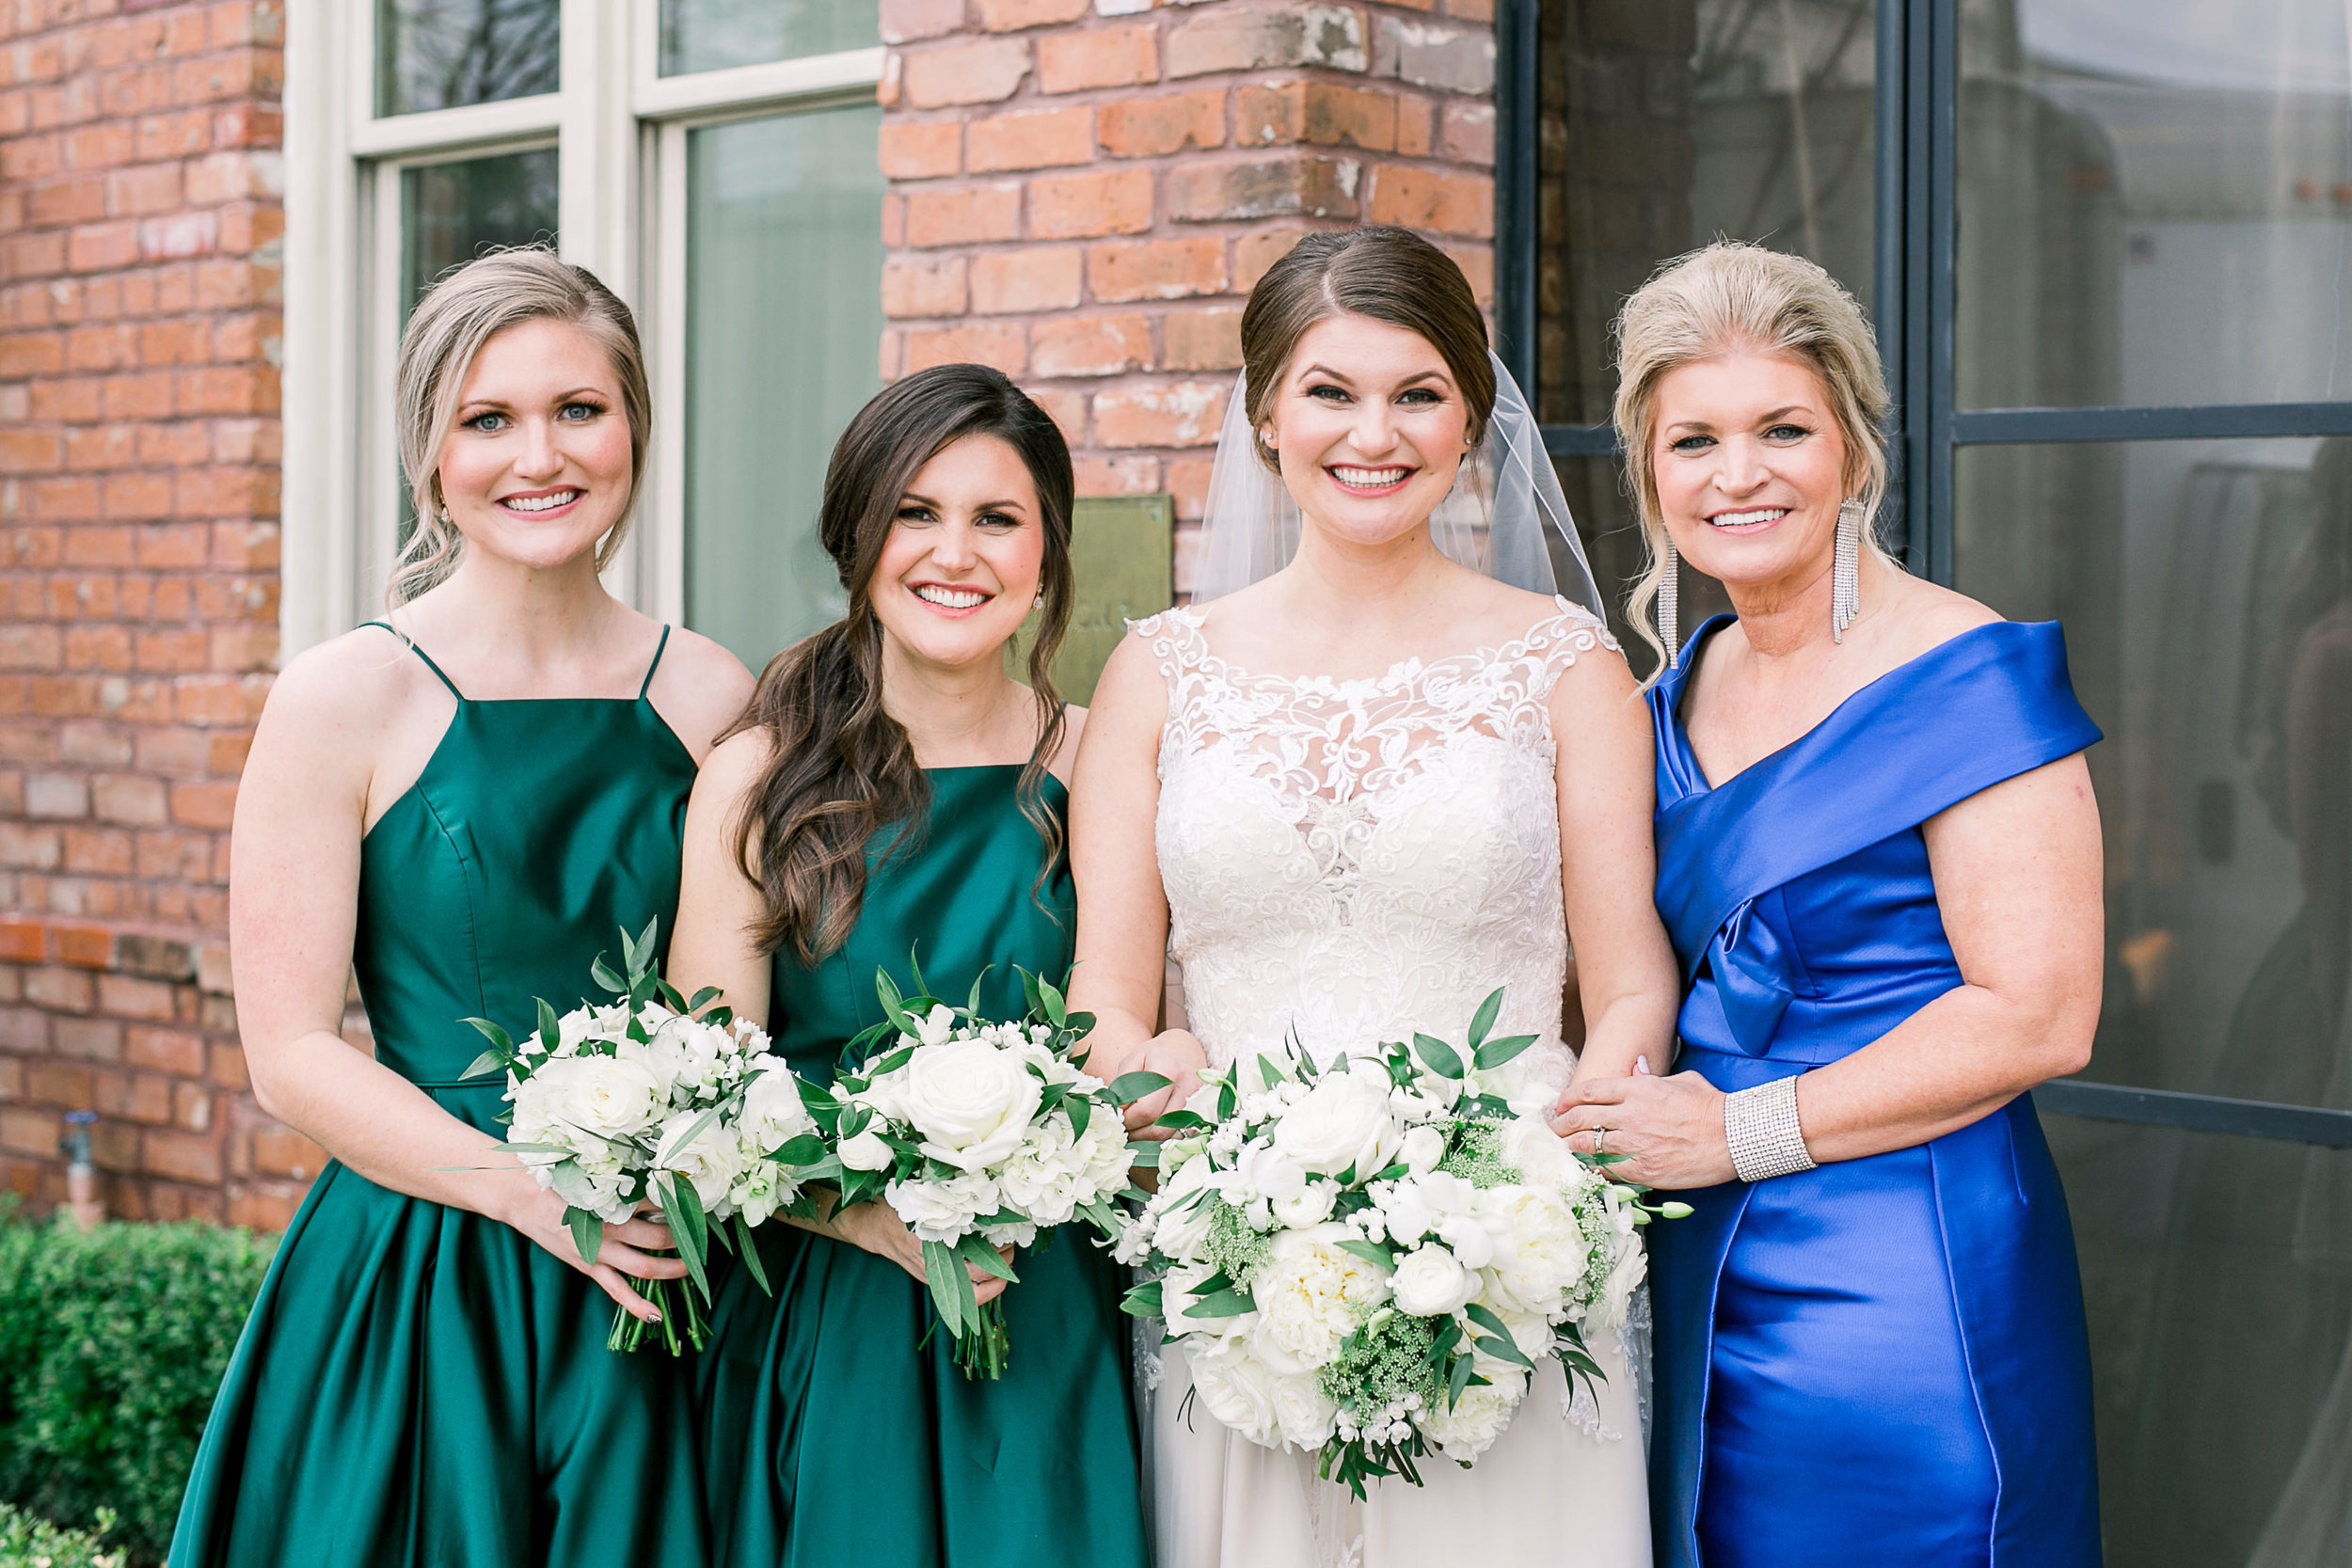 Emerald Bridesmaids dresses | Elegant wedding in Houston